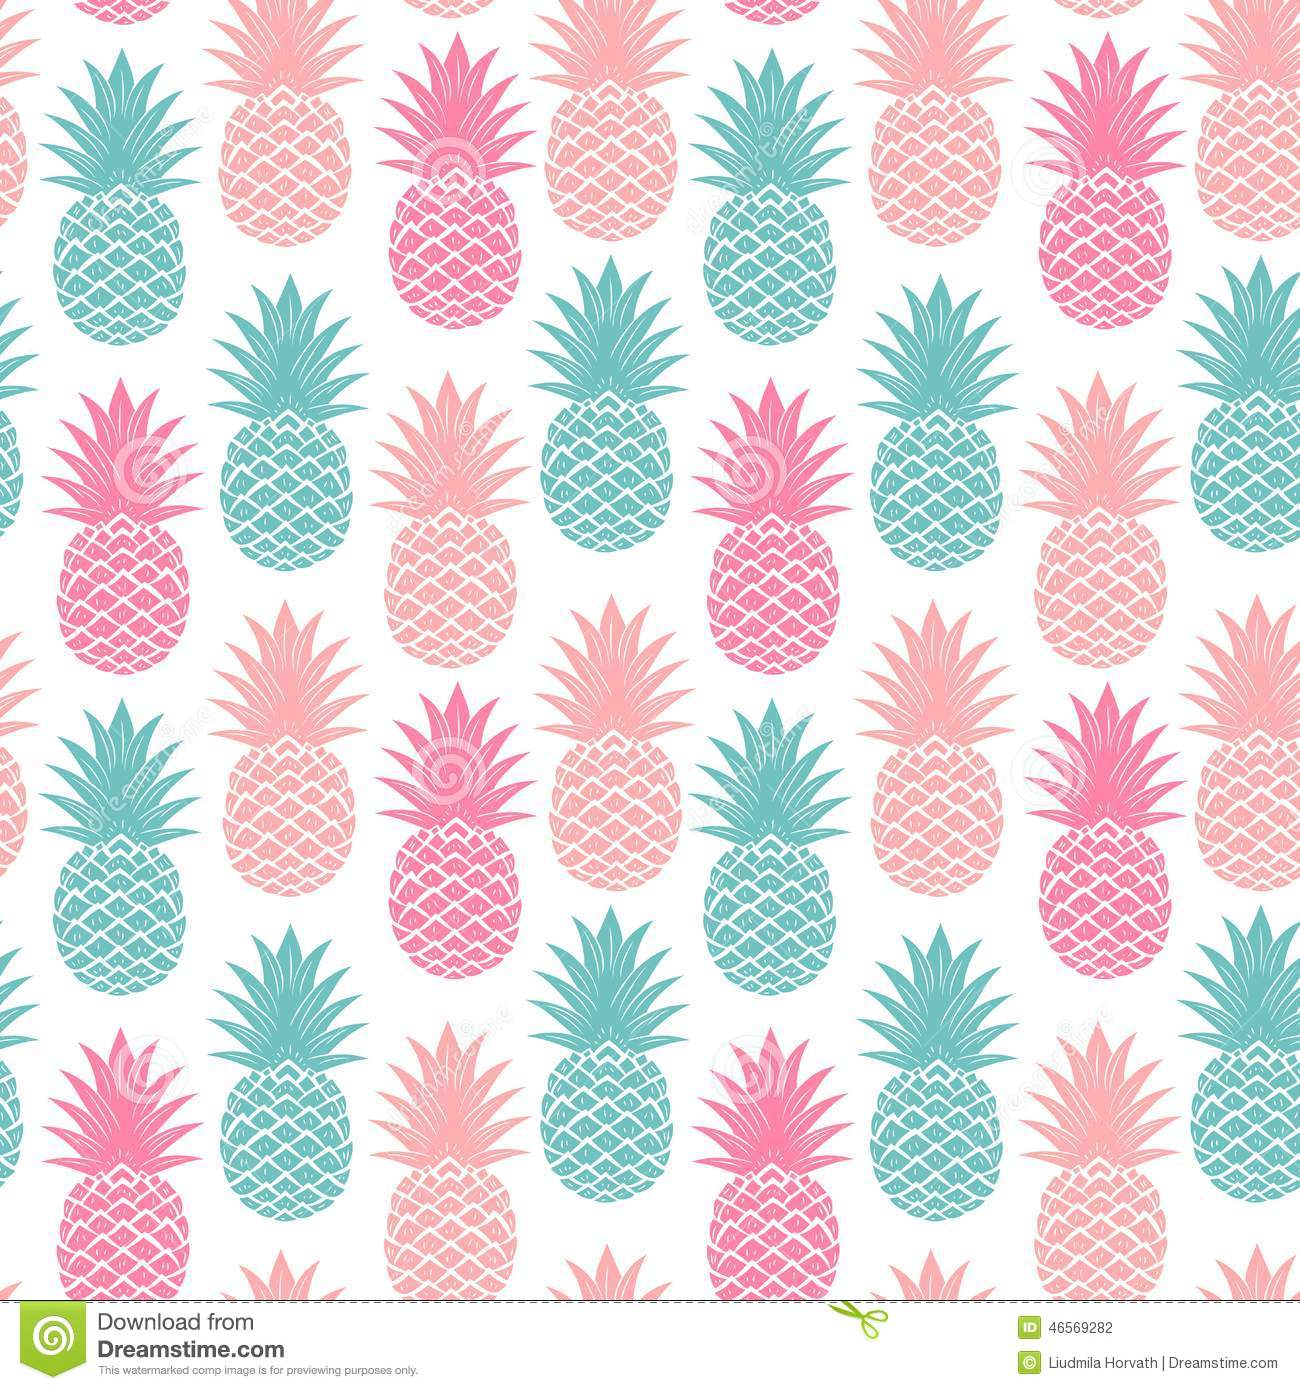 Vintage Pineapple Seamless Stock Vector - Image: 46569282